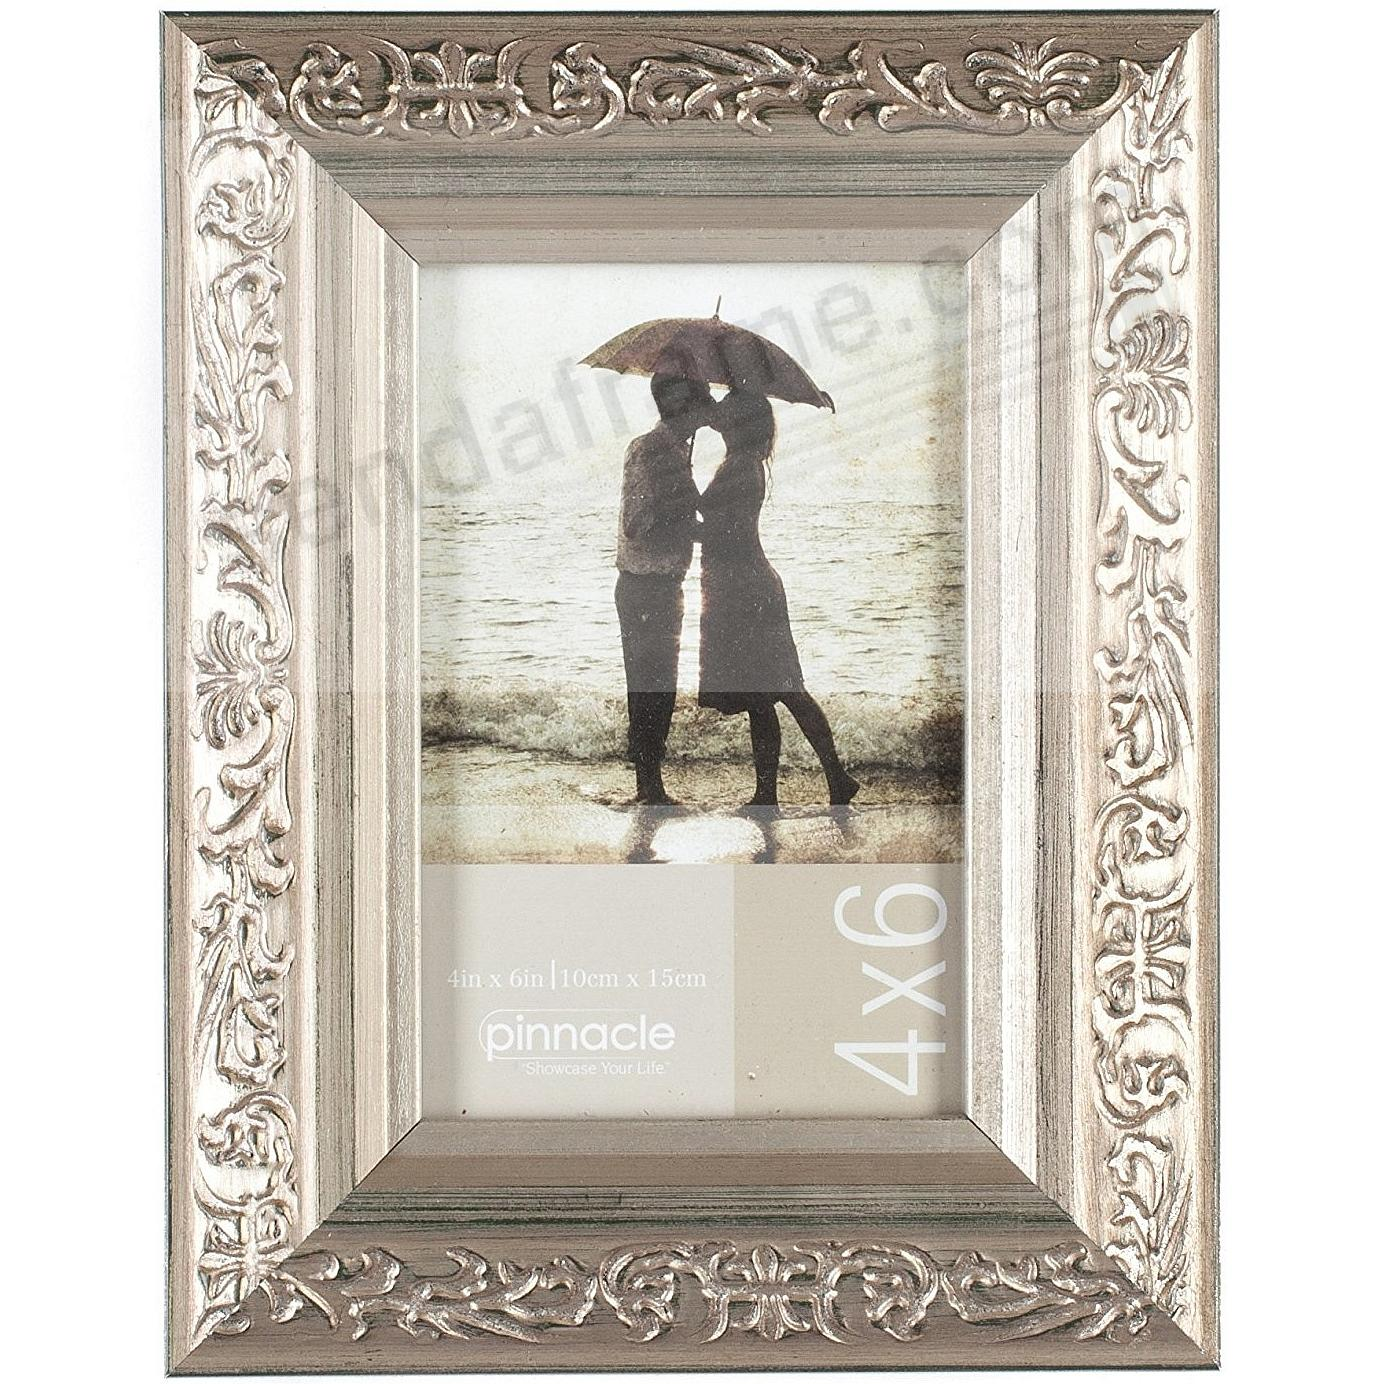 CHAMPAGNE ORNATE 4x6 frame by Pinnacle®